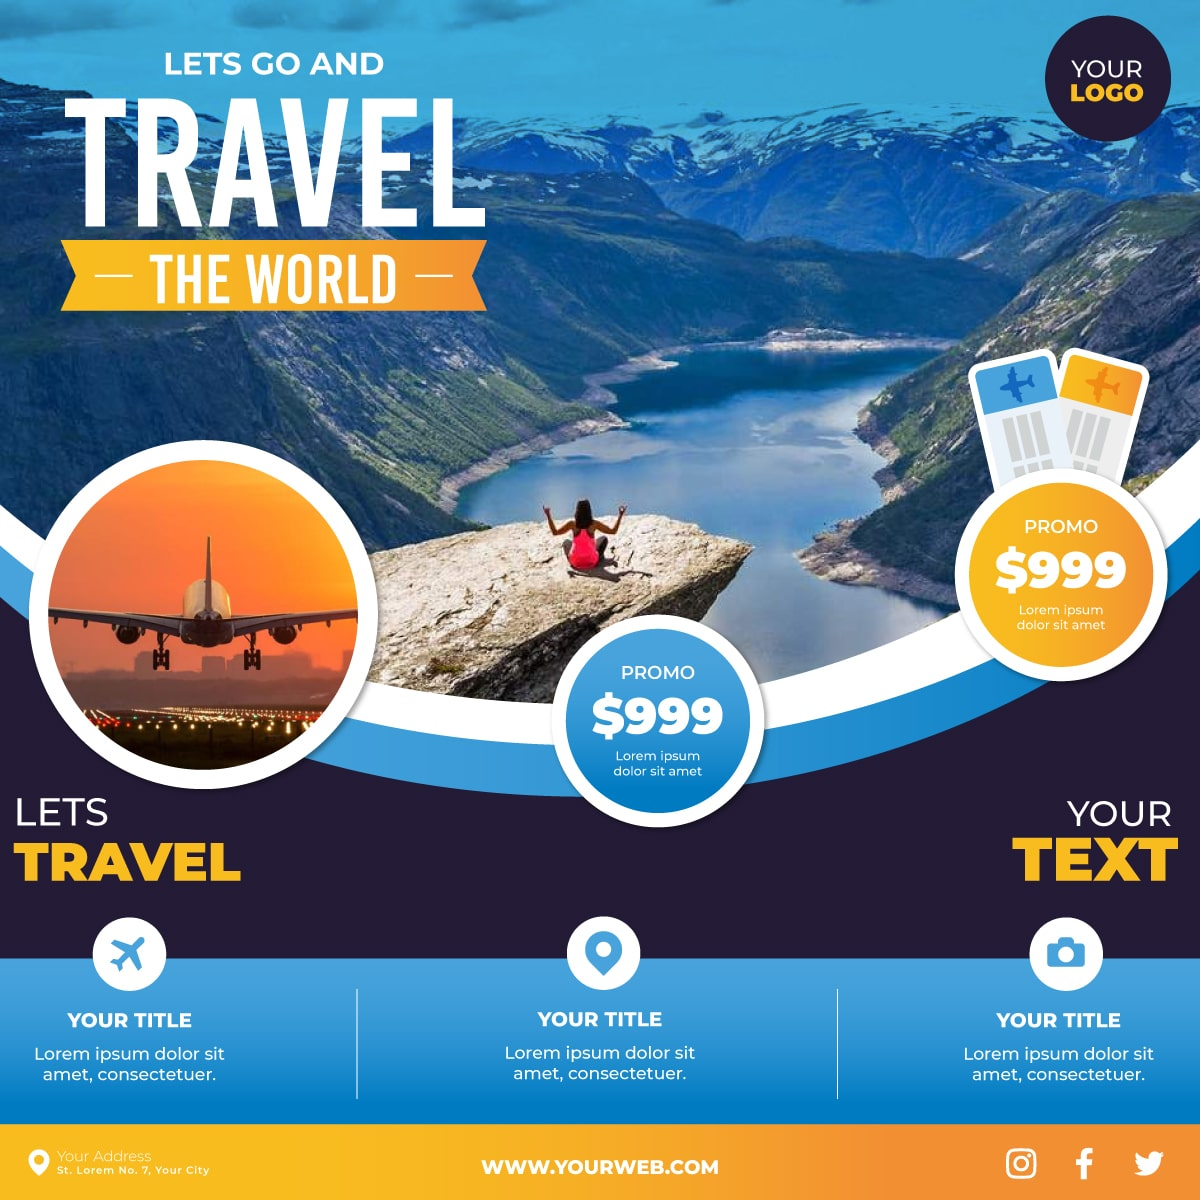 Tour and Travel Services Creatives Sample